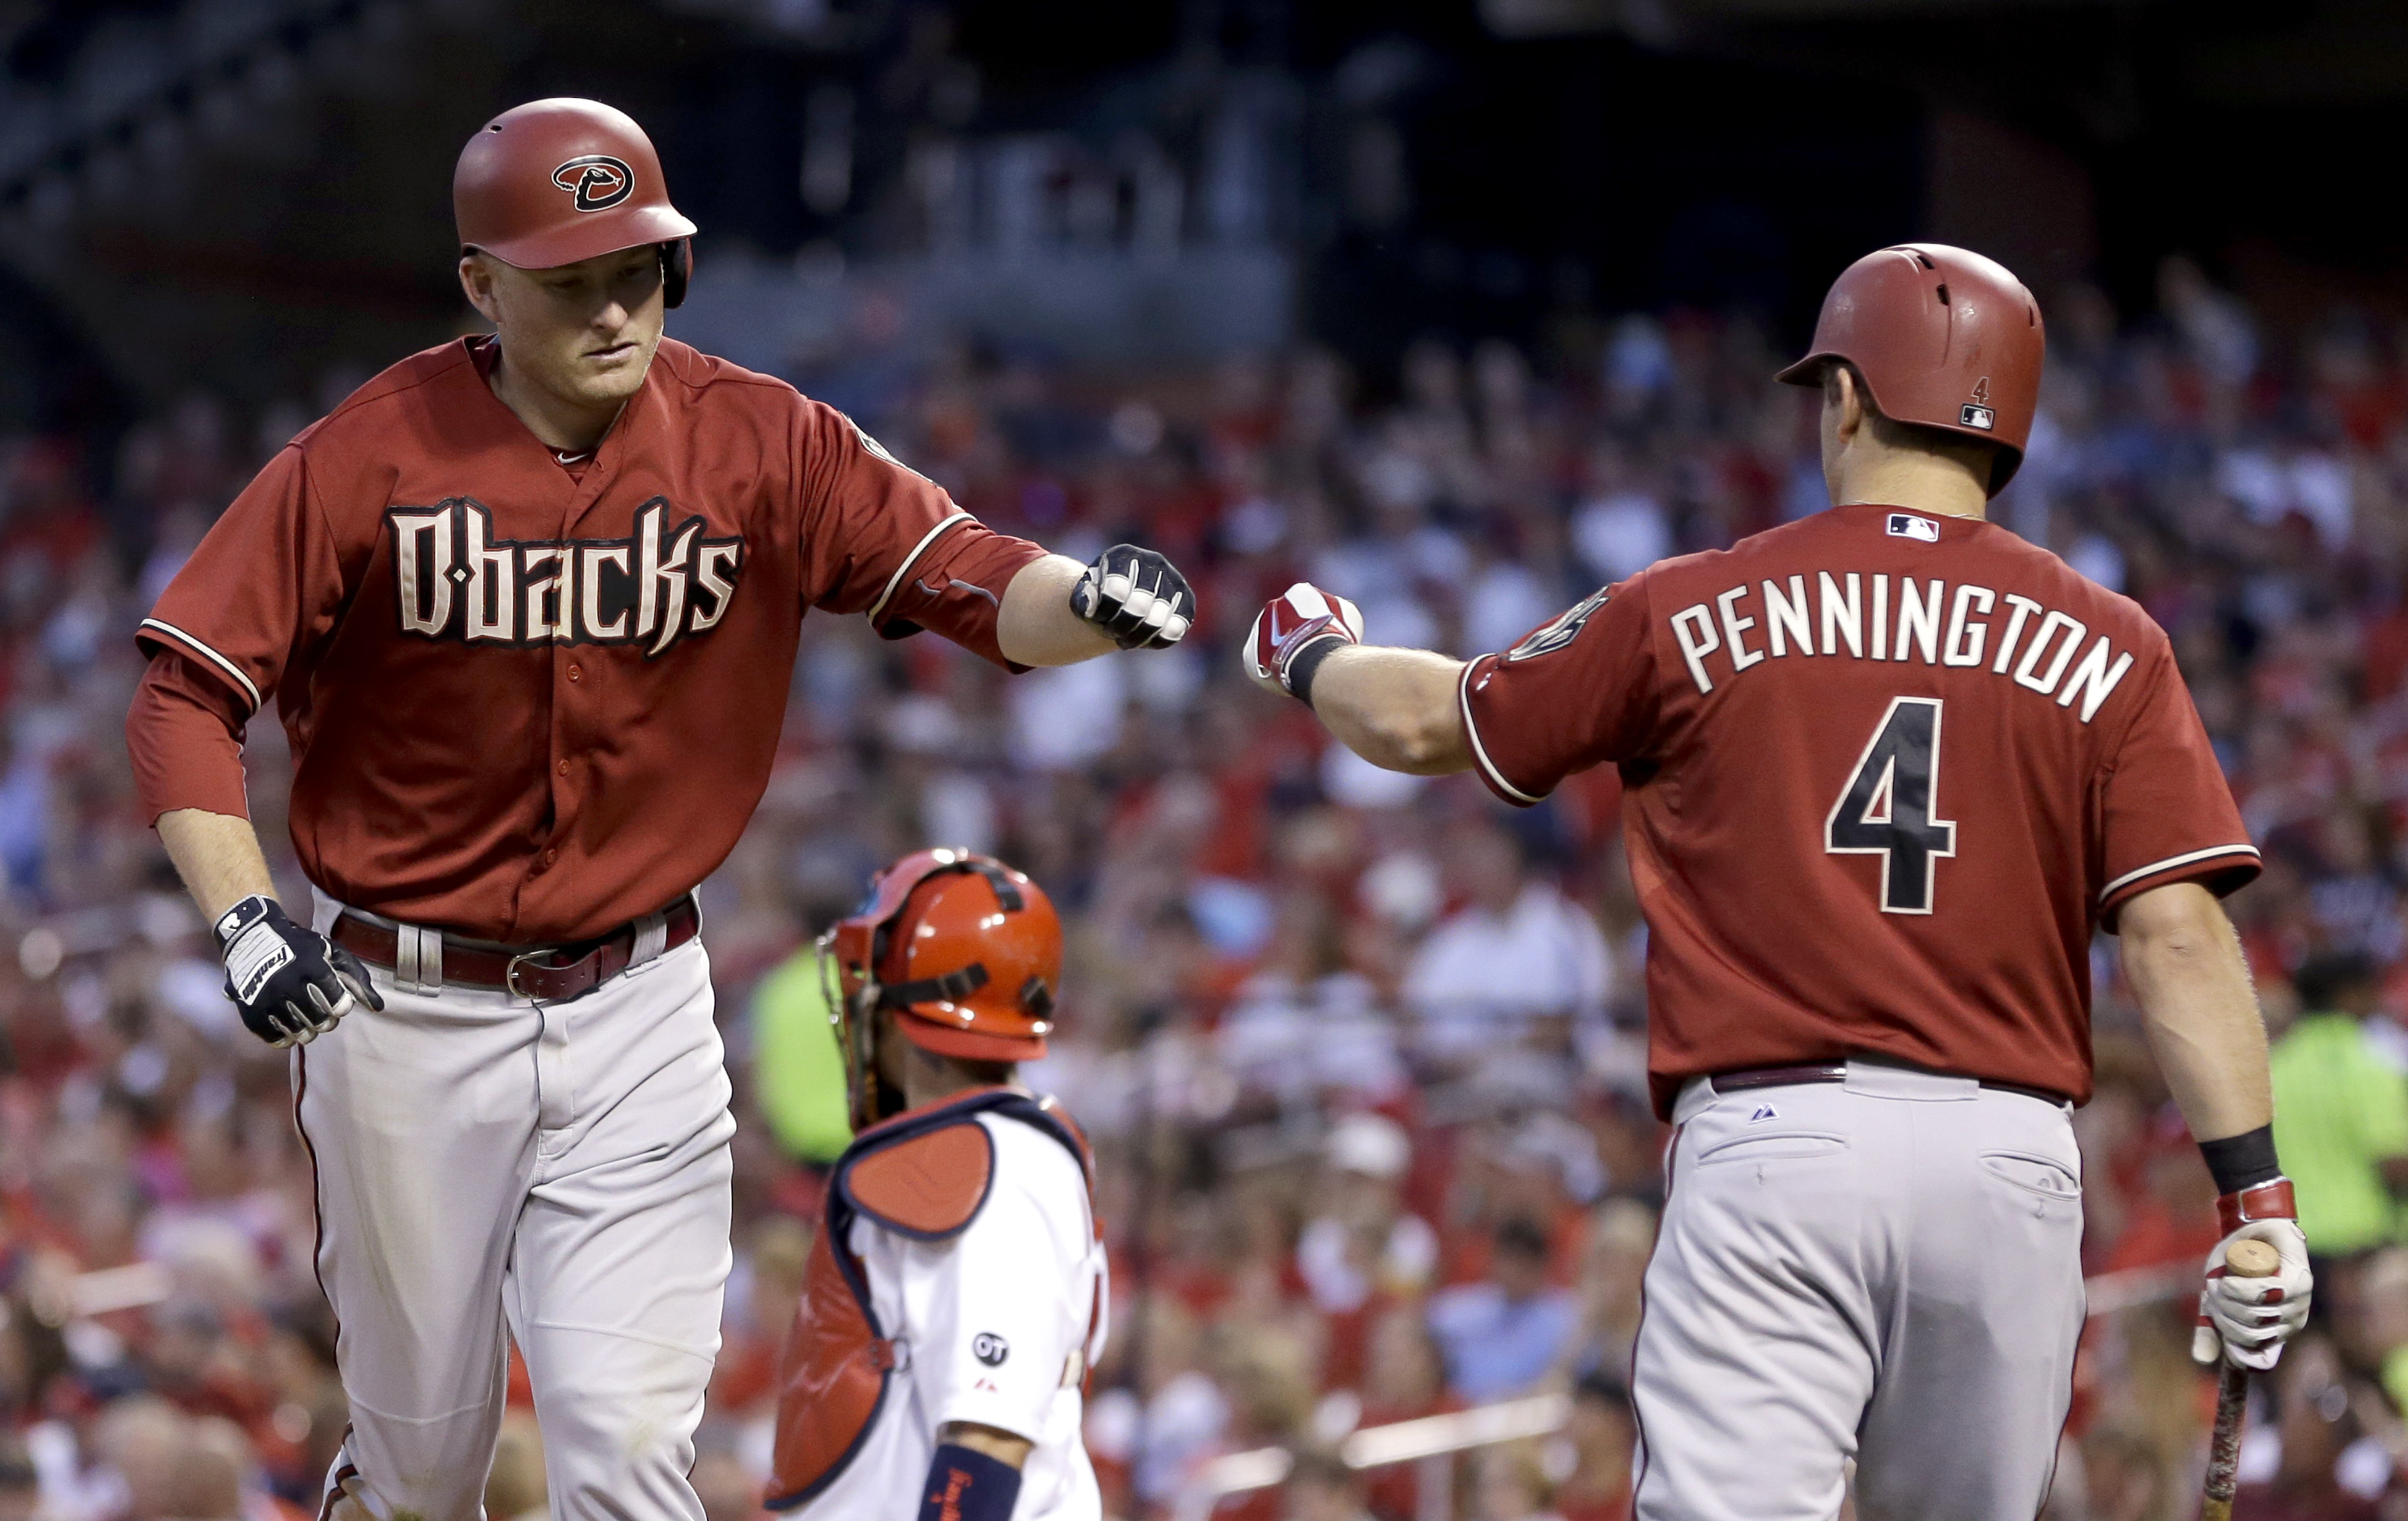 Arizona Diamondbacks' Mark Trumbo, left, is congratulated by teammate Cliff Pennington after hitting a solo home run during the fourth inning of a baseball game against the St. Louis Cardinals Wednesday, May 27, 2015, in St. Louis. (AP Photo/Jeff Roberson